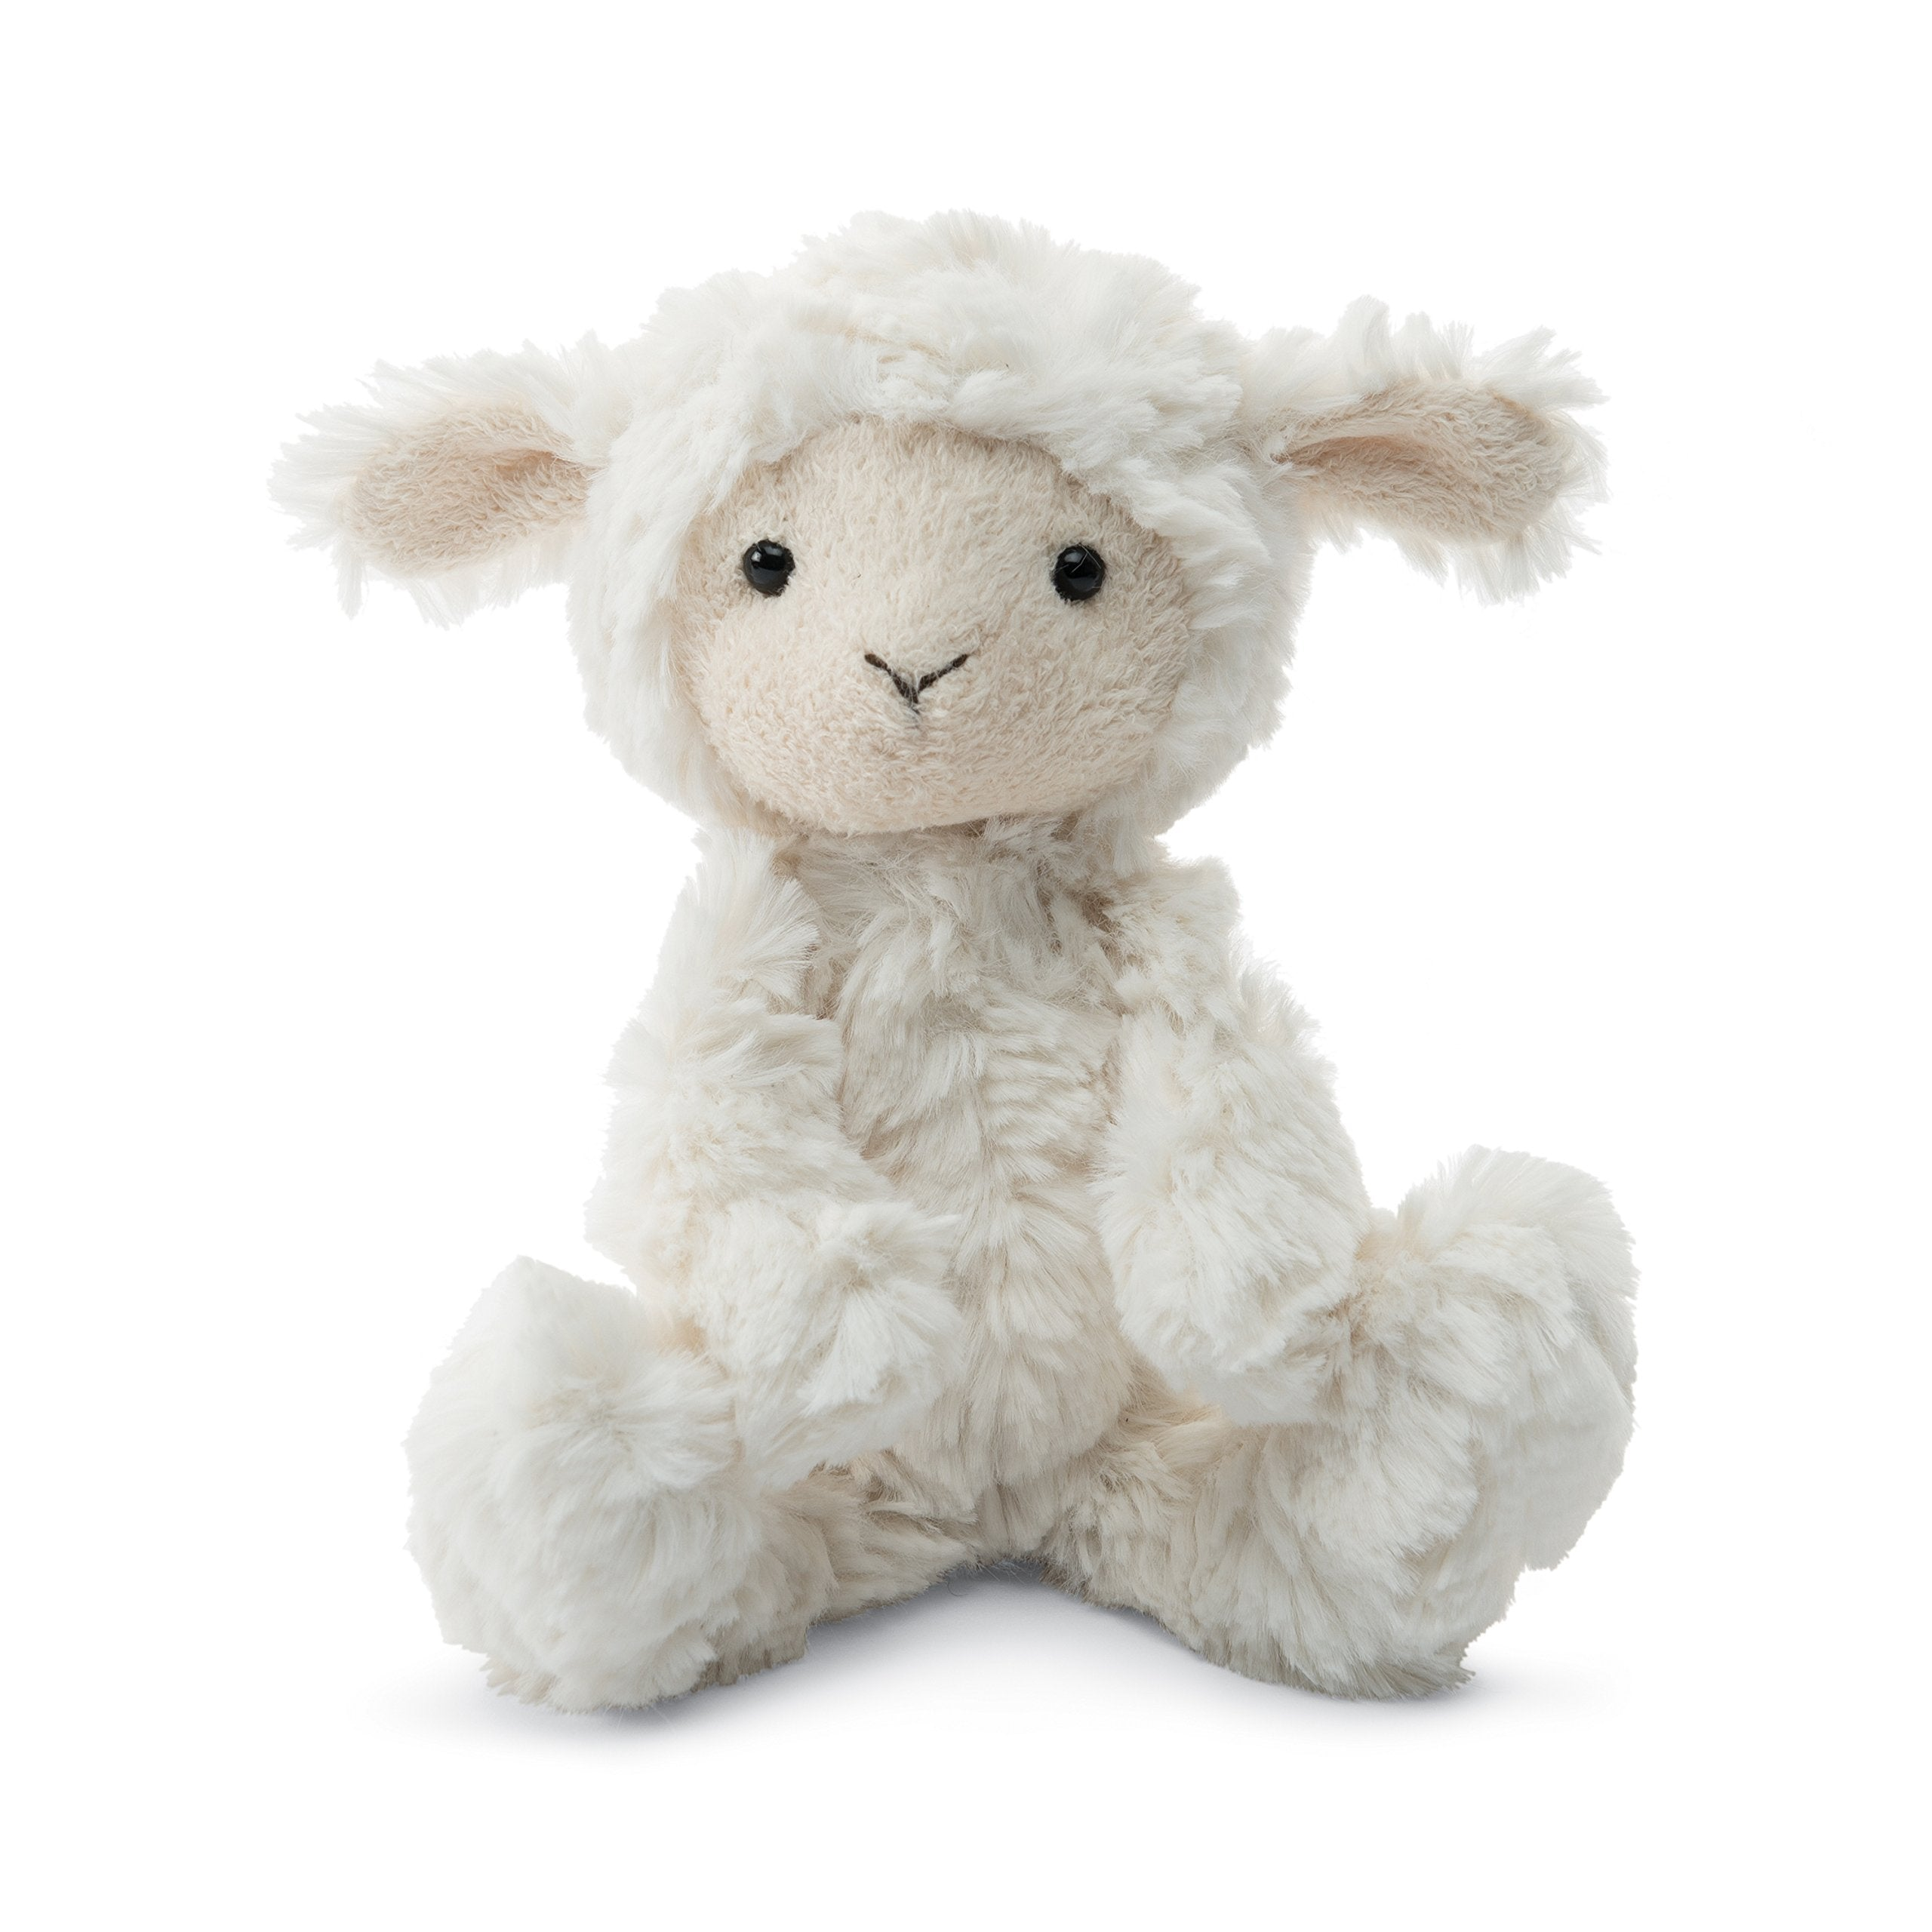 Jellycat Squiggle Lamb Stuffed Animal, Small, 9 inches - WishBasket